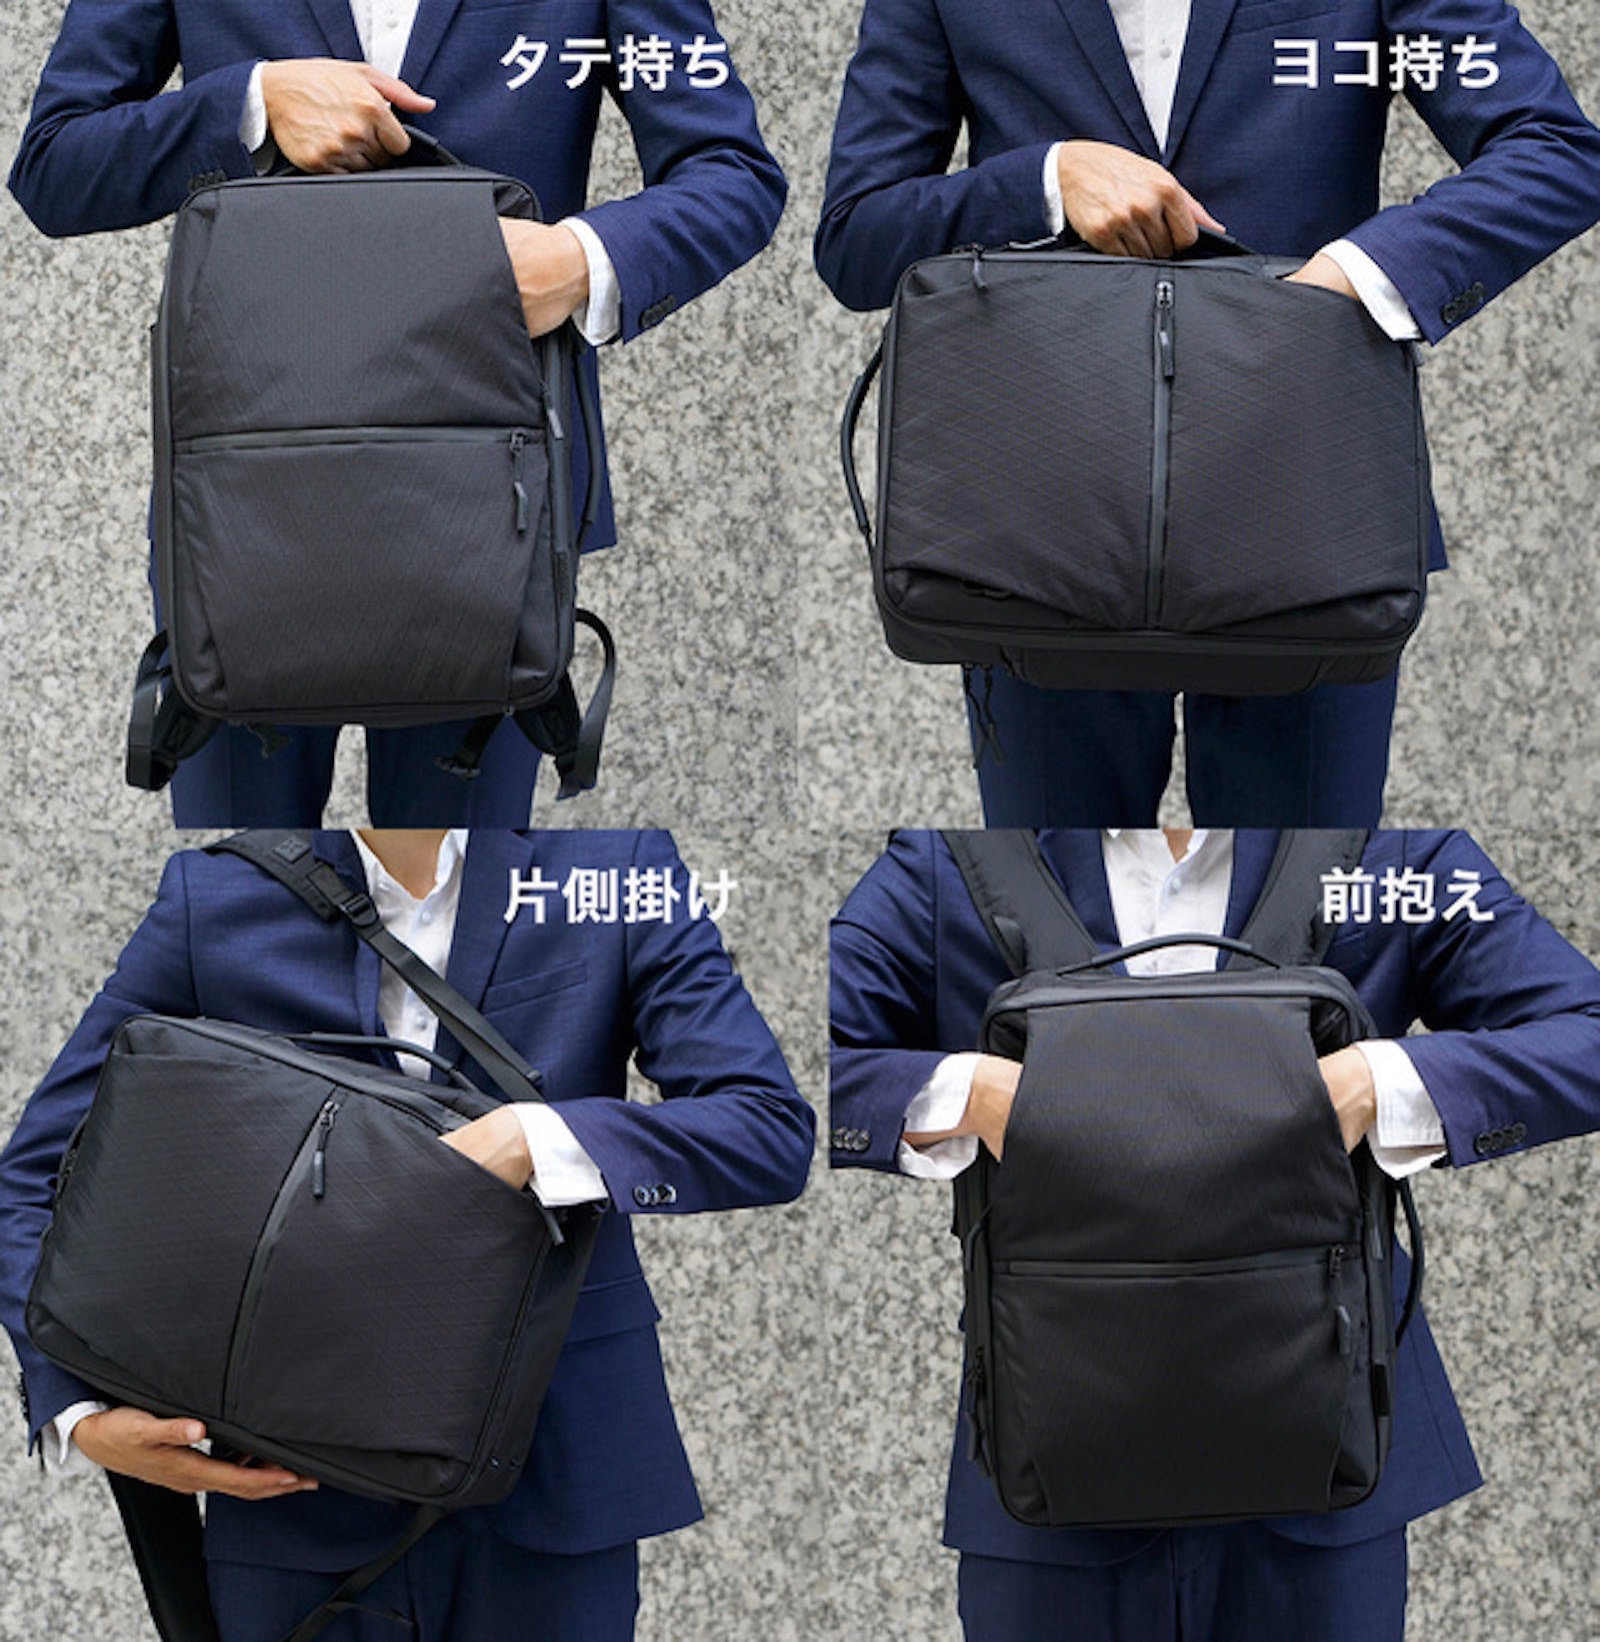 x-pocket-xgo-bizbackpack.jpg